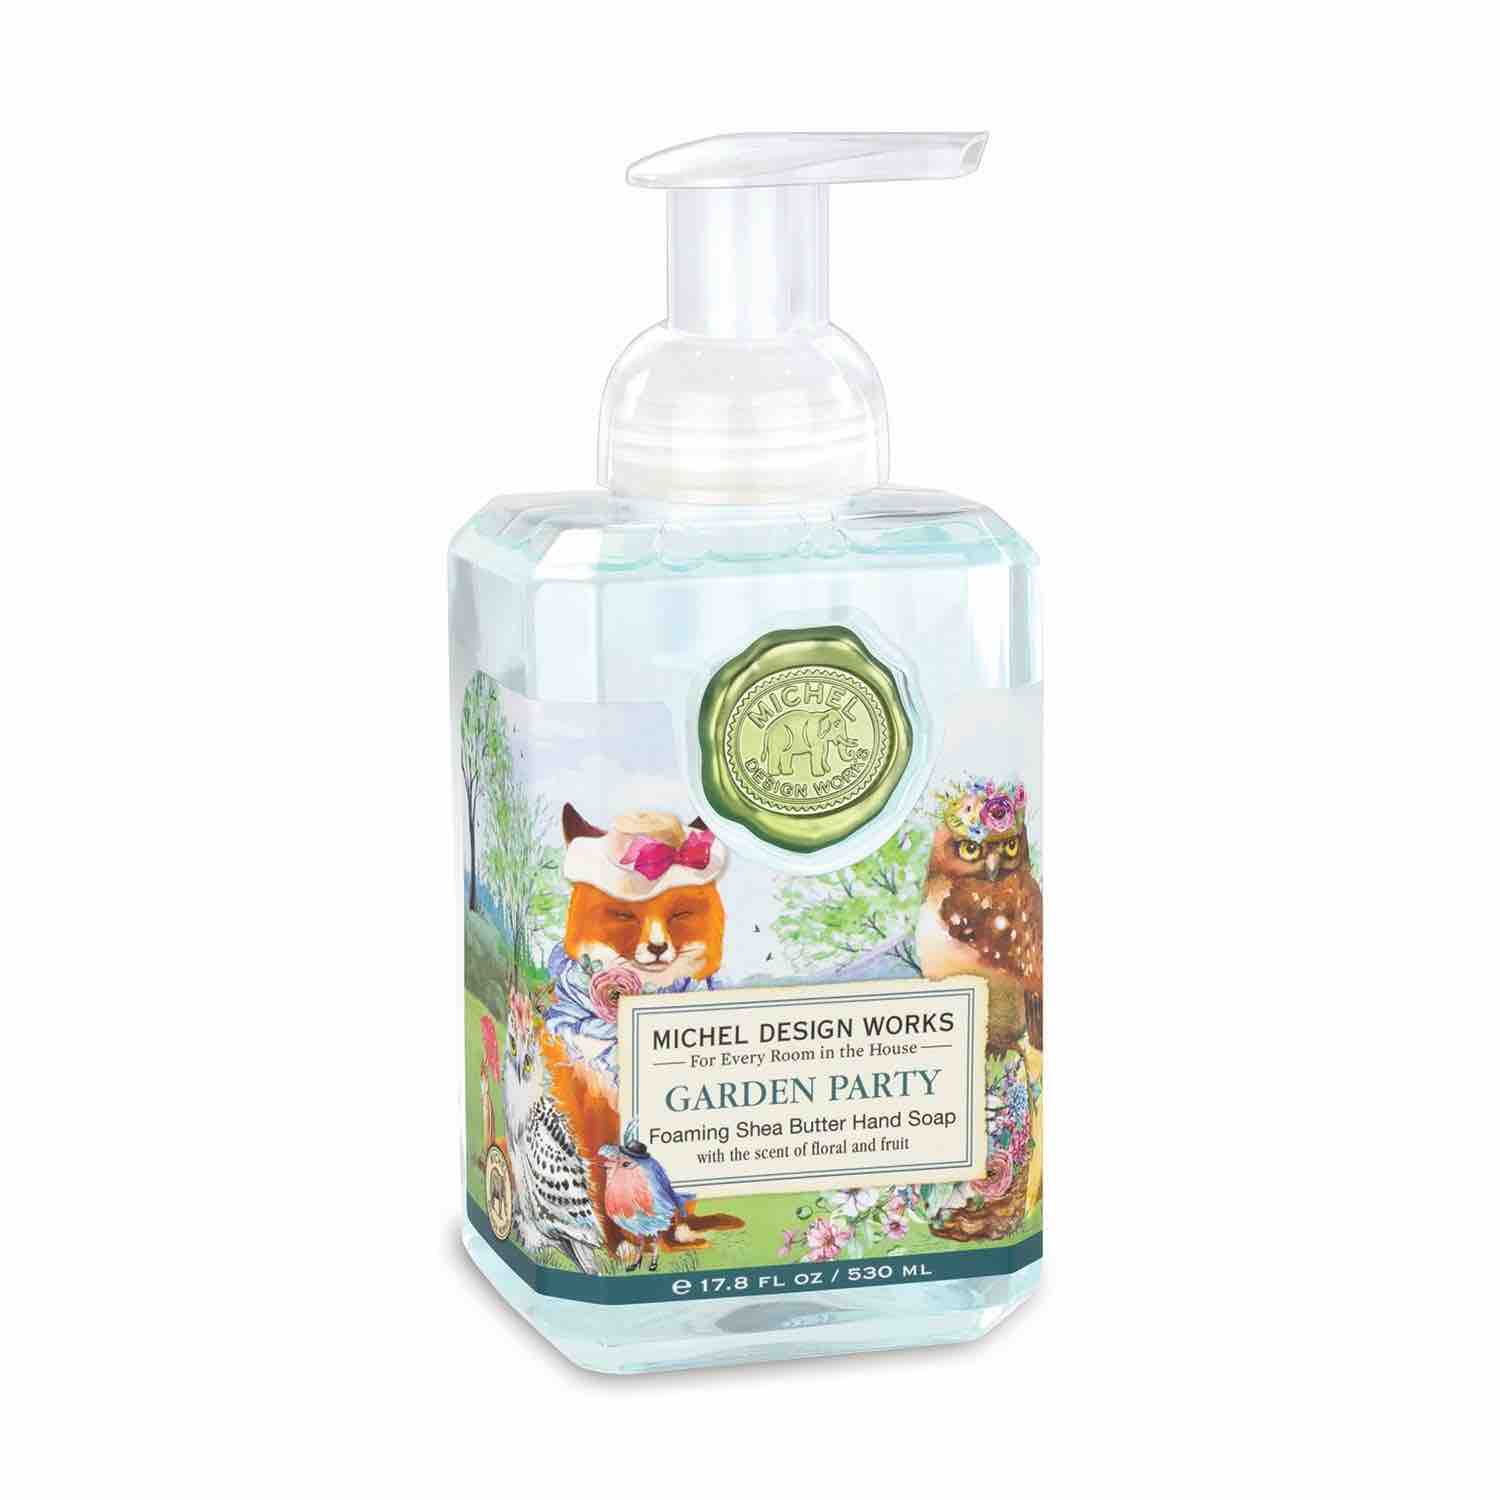 Michel Design Works Foaming Soap | Garden Party